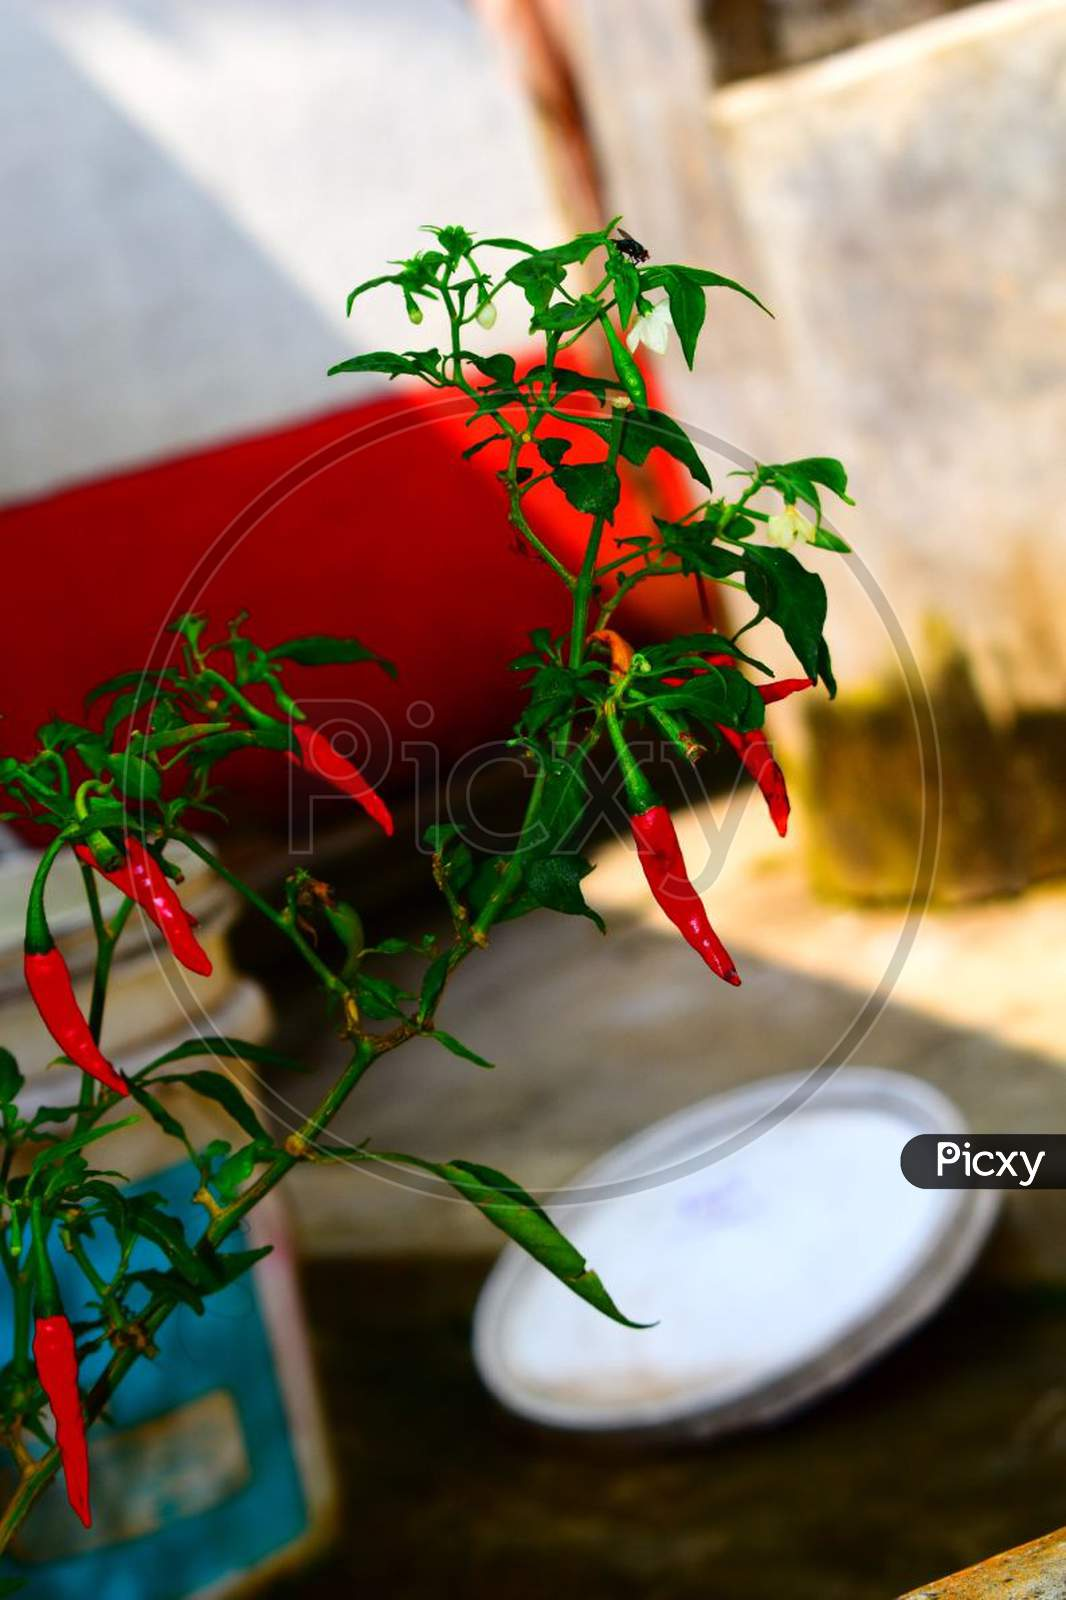 A red chilli plant